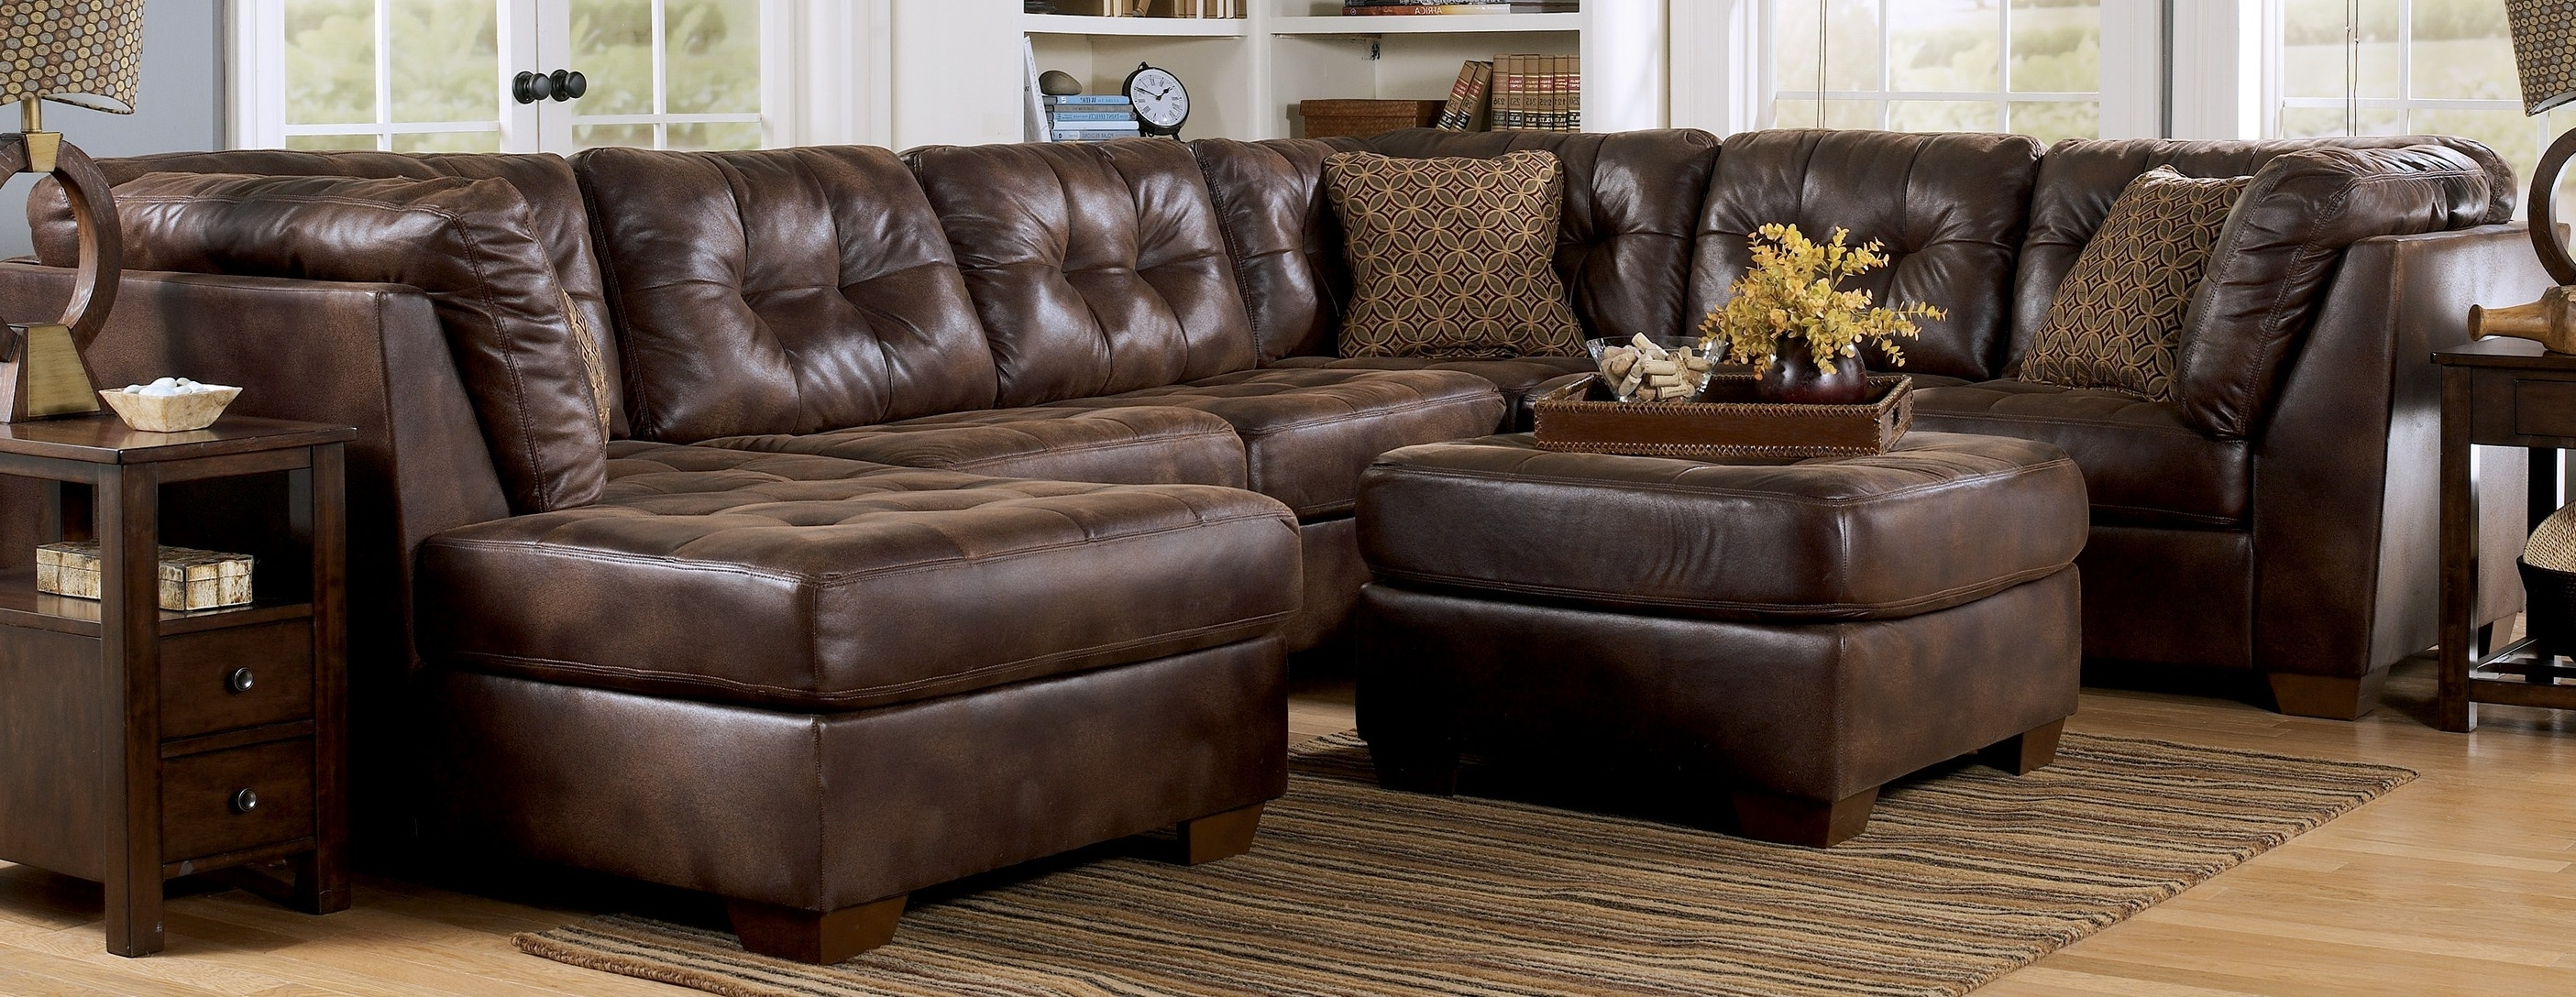 My Parents Have This Couch, And Now We're Saving For It! Its Sooo Intended For Well Liked Leather Sectionals With Chaise And Ottoman (View 9 of 15)